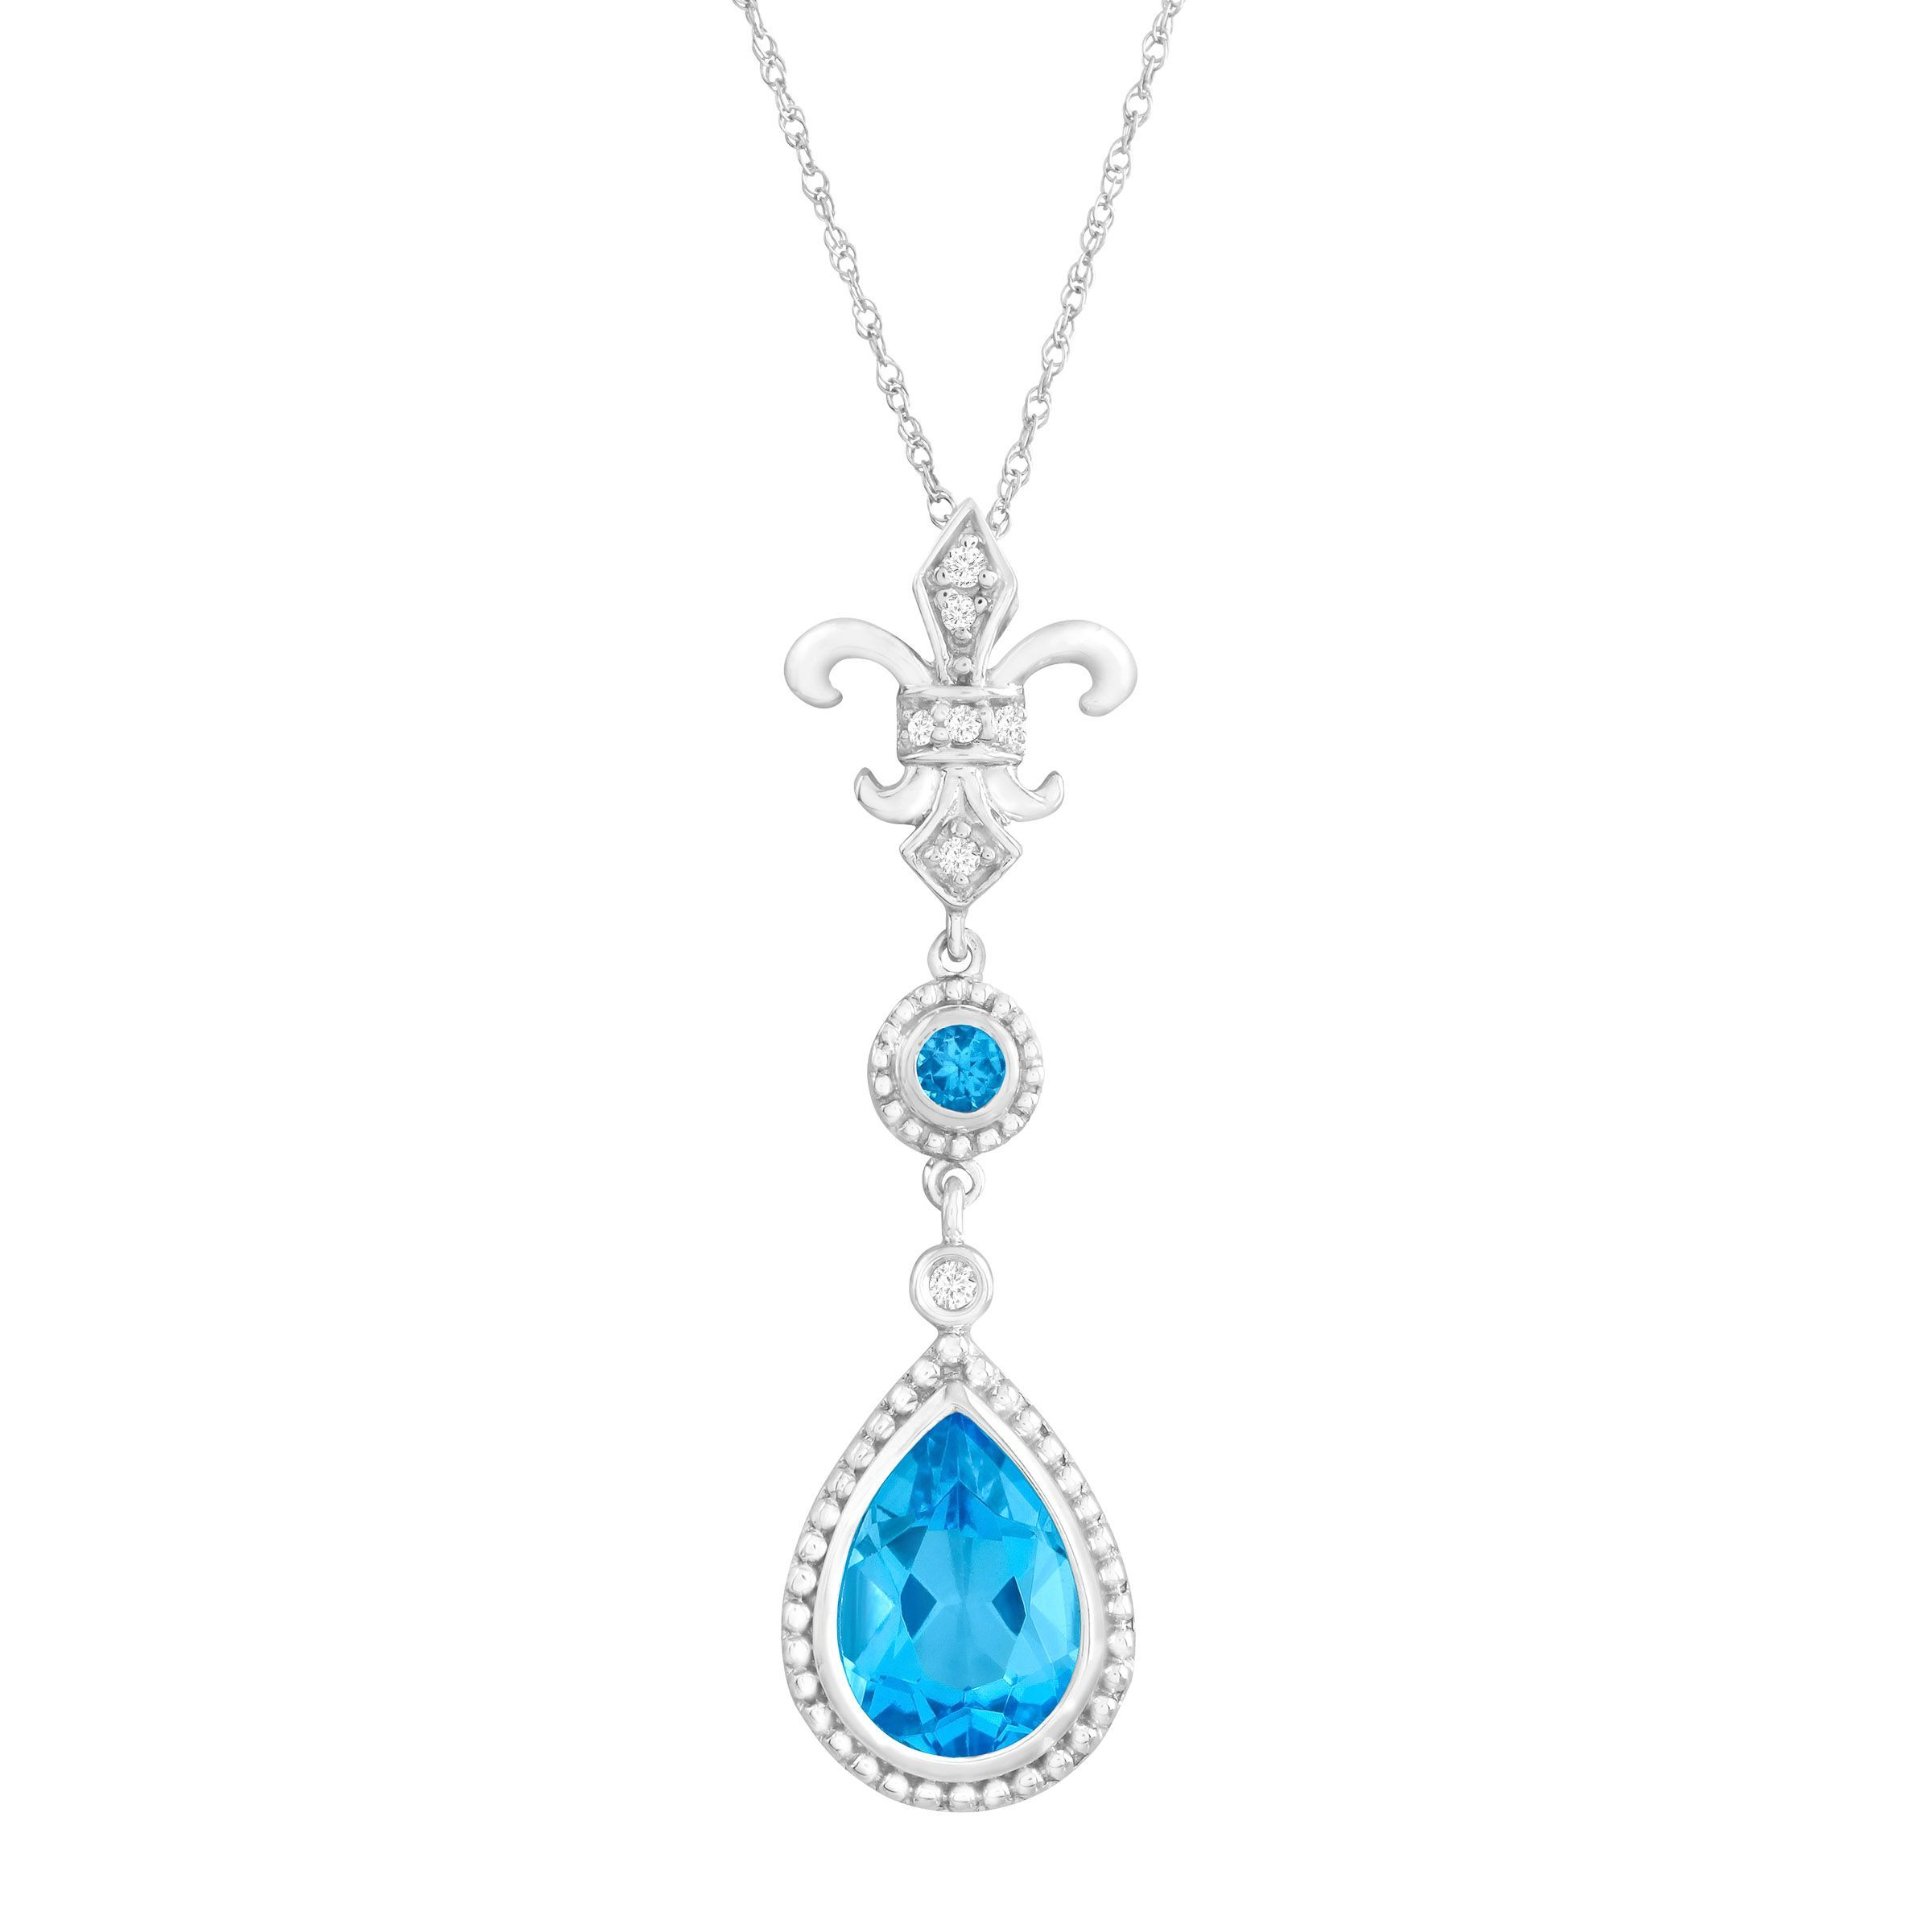 2 1/3 ct Natural Swiss Blue Topaz Fleur-De-Lis Pendant Necklace with Diamonds in 14K White Gold Invest in a classic with this regal fleur-de-lis pendant. Pear and round-cut natural Swiss blue topaz totaling 2 1/3 ct are offset with shimmering diamond accents in a setting of 14K white gold. Piece measures 1 1/2 by 3/8 inches. Comes with a 14K white gold 18-inch rope chain.